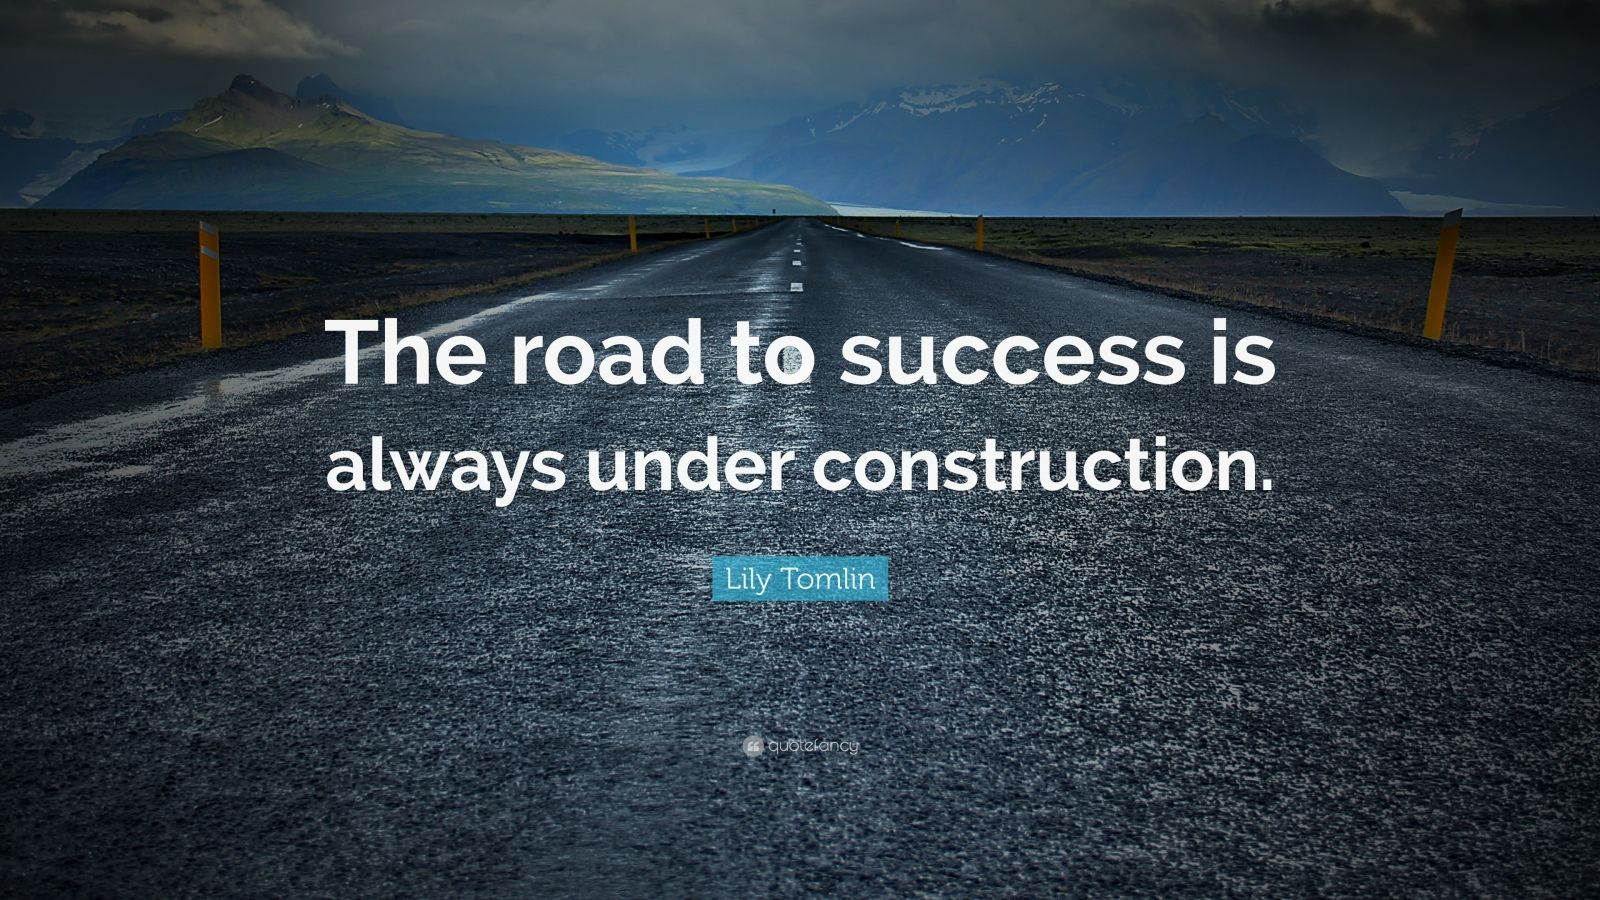 the road to success is always under construction essay The price of success is hard work, dedication to the job at hand, and the determination that whether we win or lose, we have applied the best of ourselves to the task at hand.